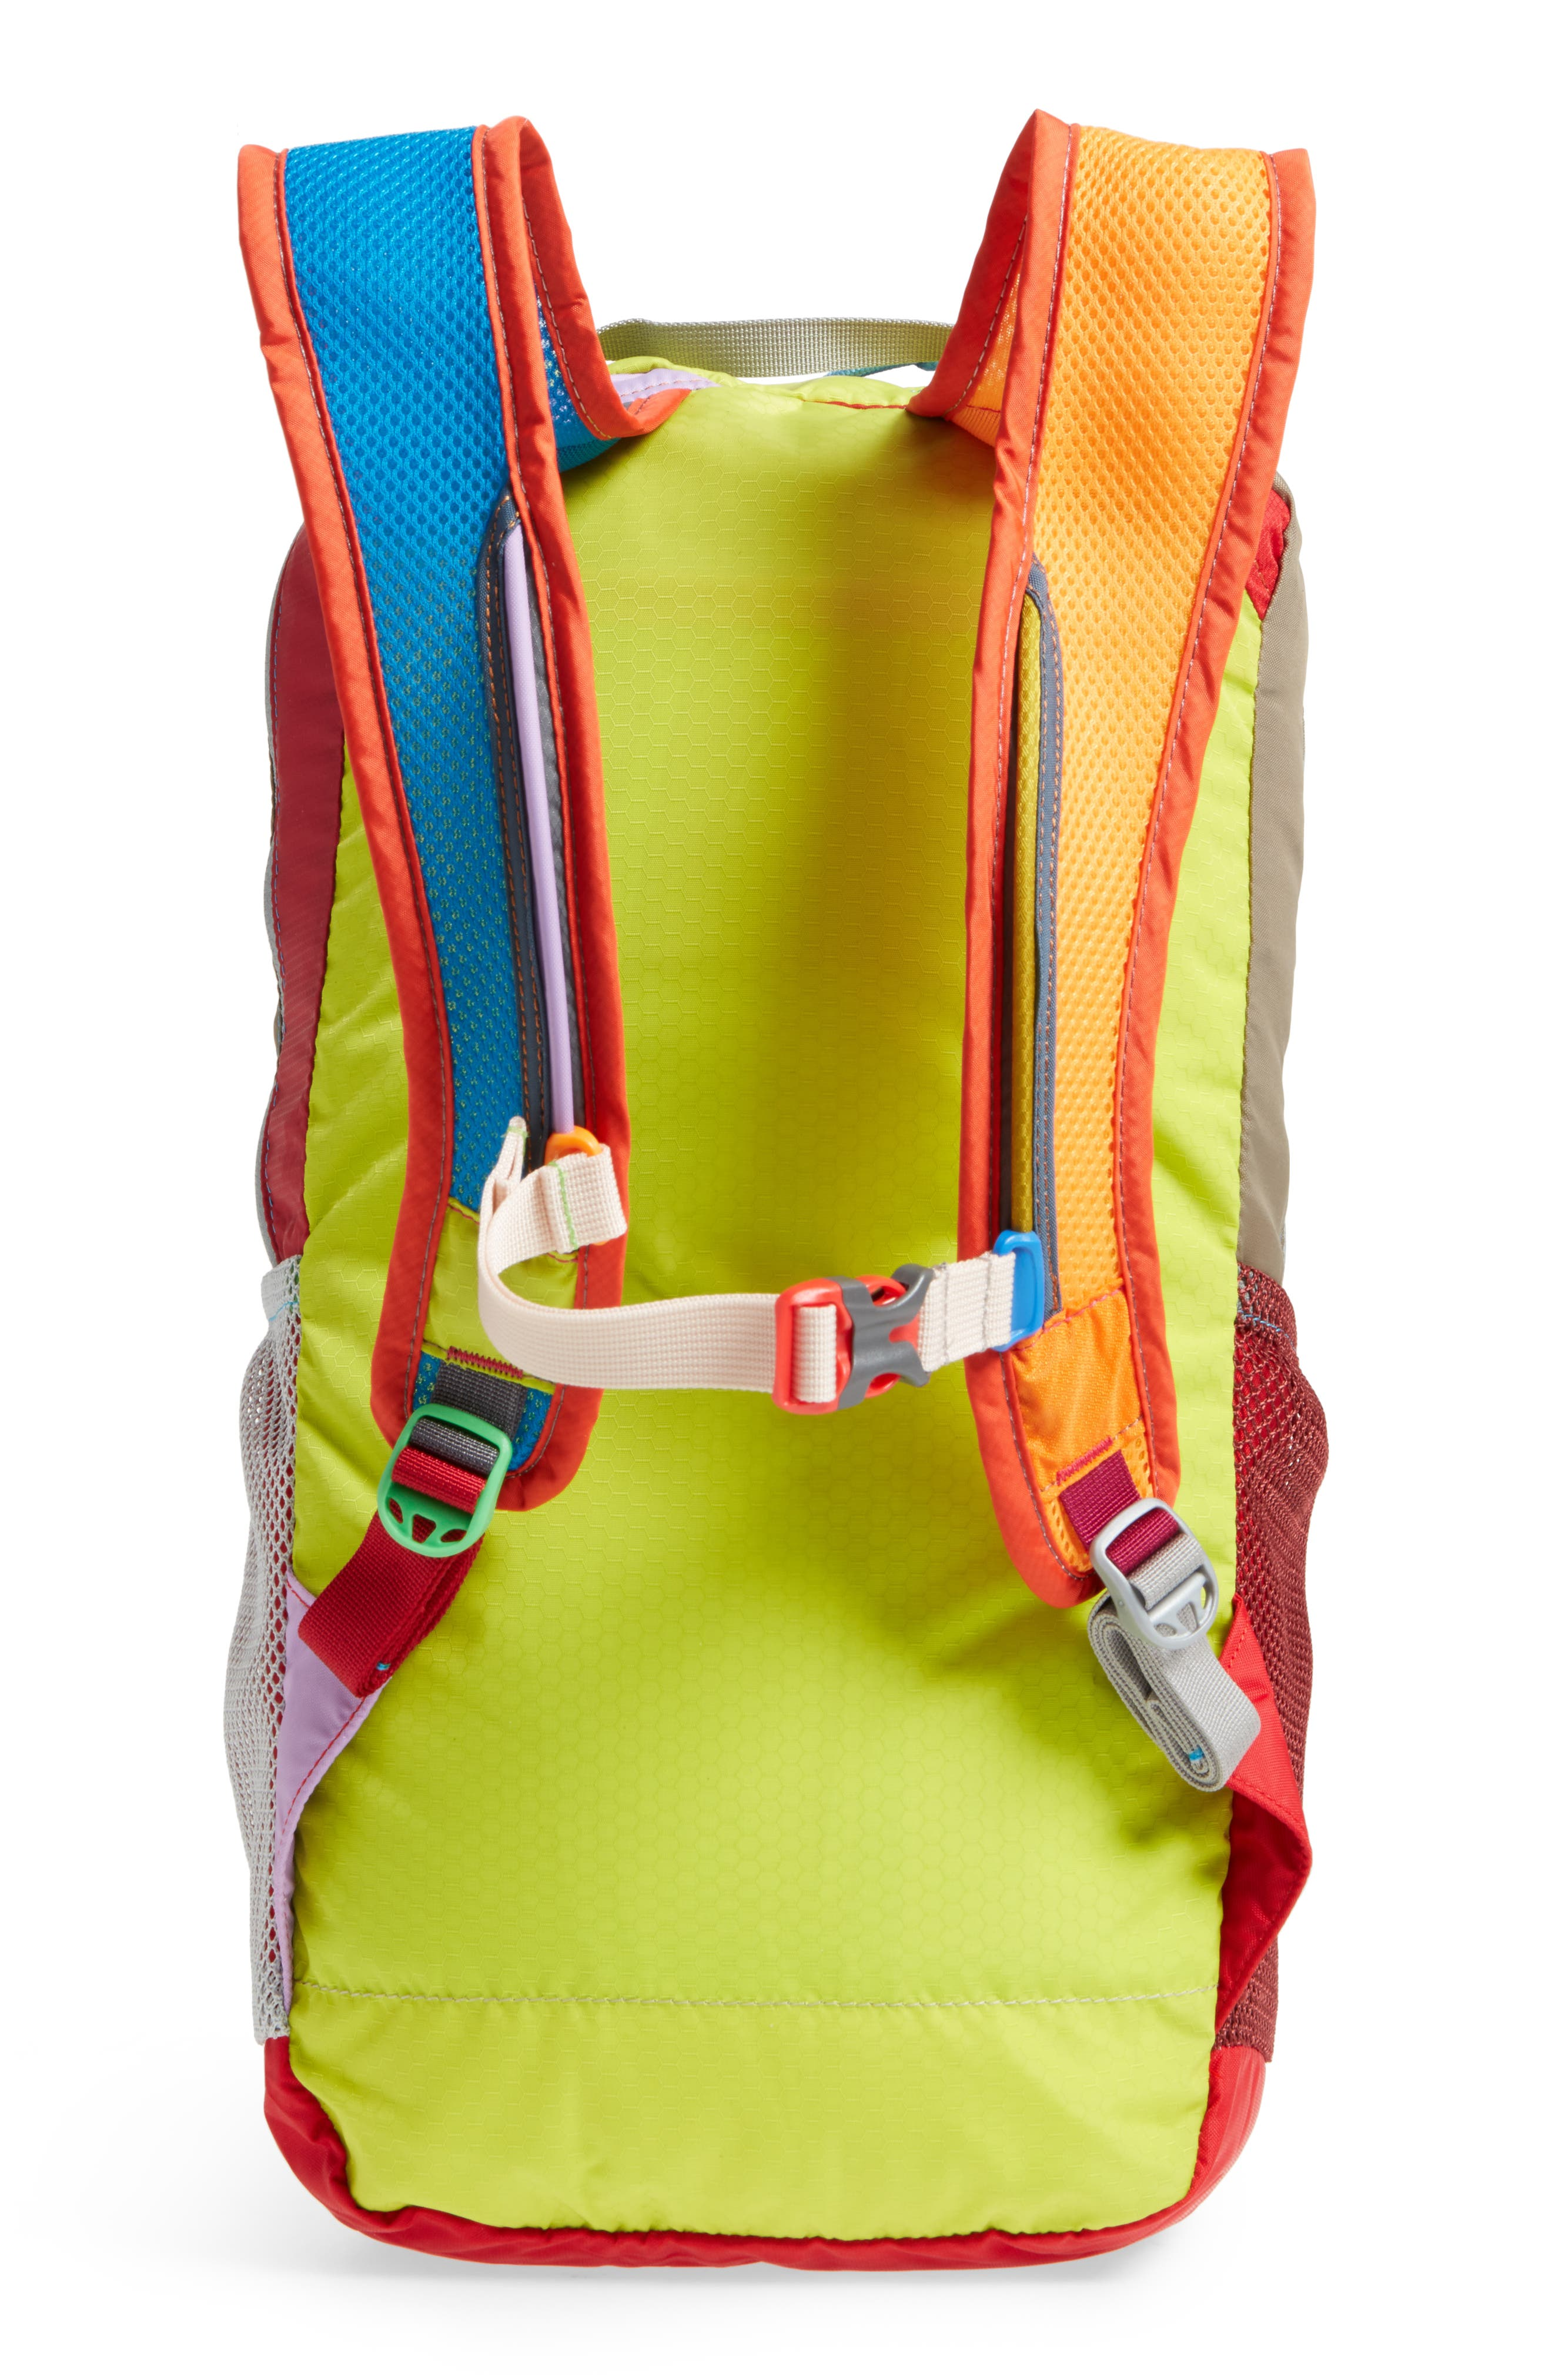 Batac Del Día One of a Kind Ripstop Nylon Daypack,                             Alternate thumbnail 3, color,                             960